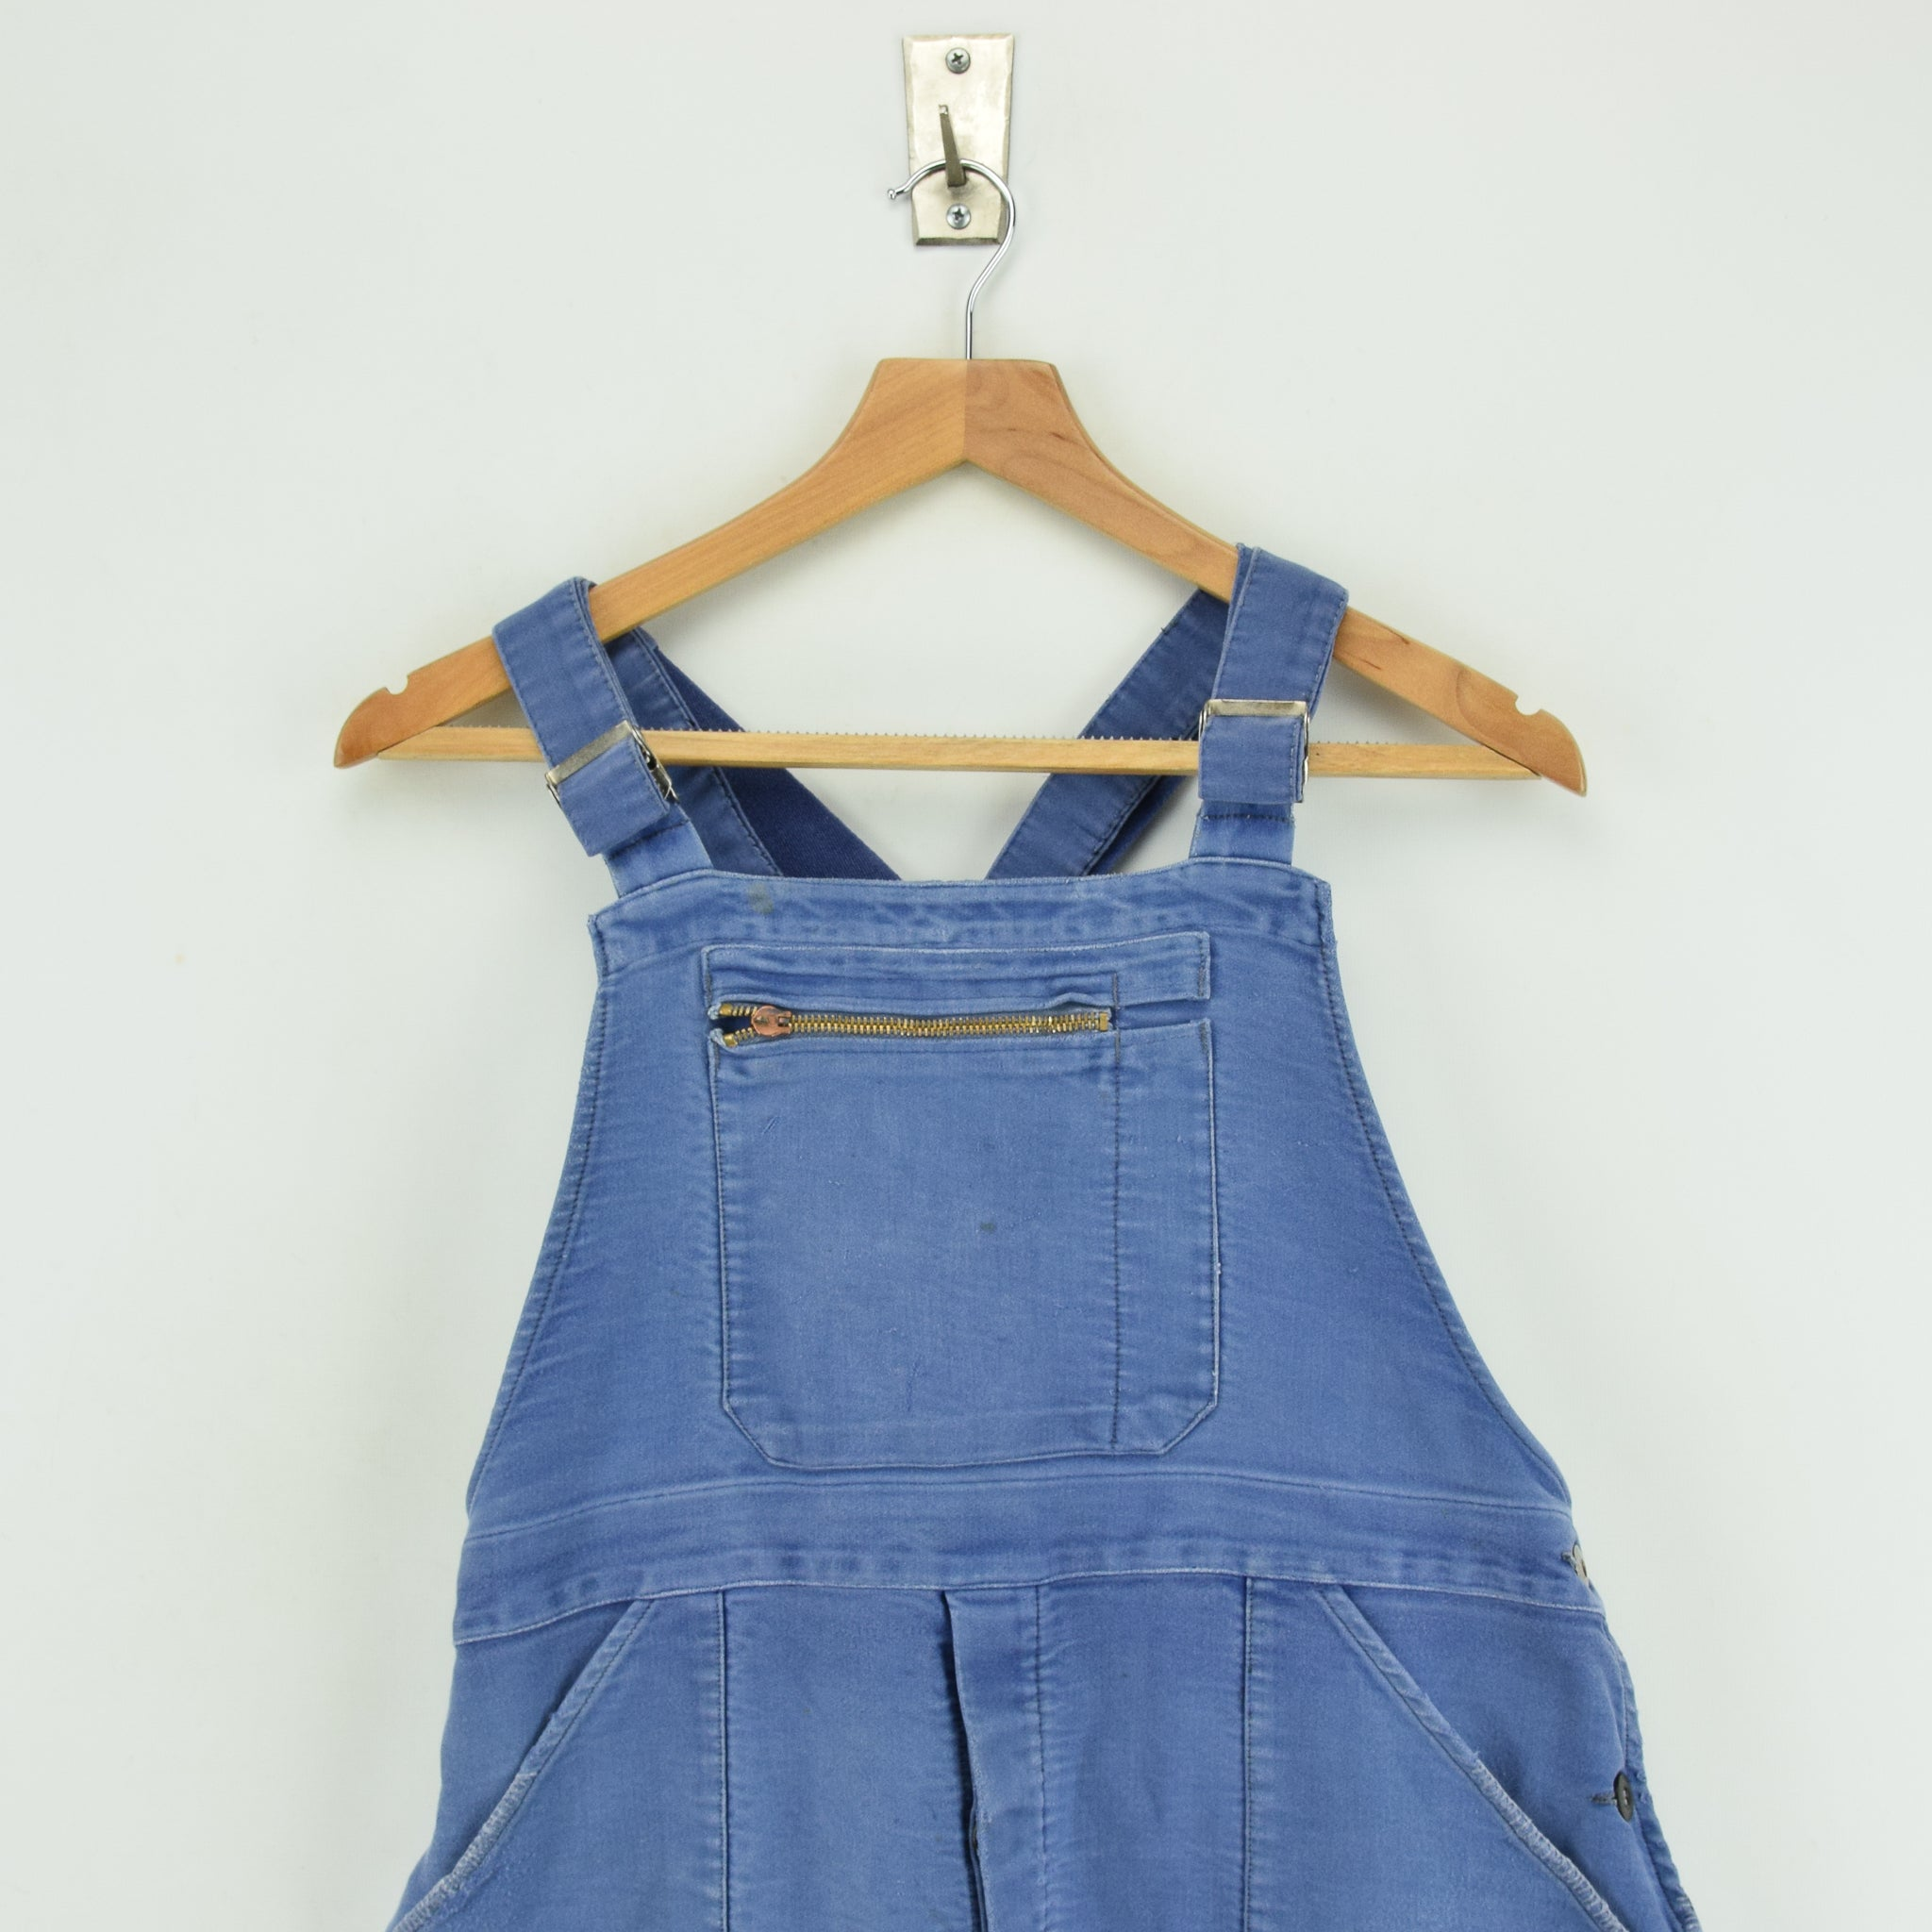 Vintage Distressed Blue French Moleskin Workwear Dungarees Trousers S / M chest